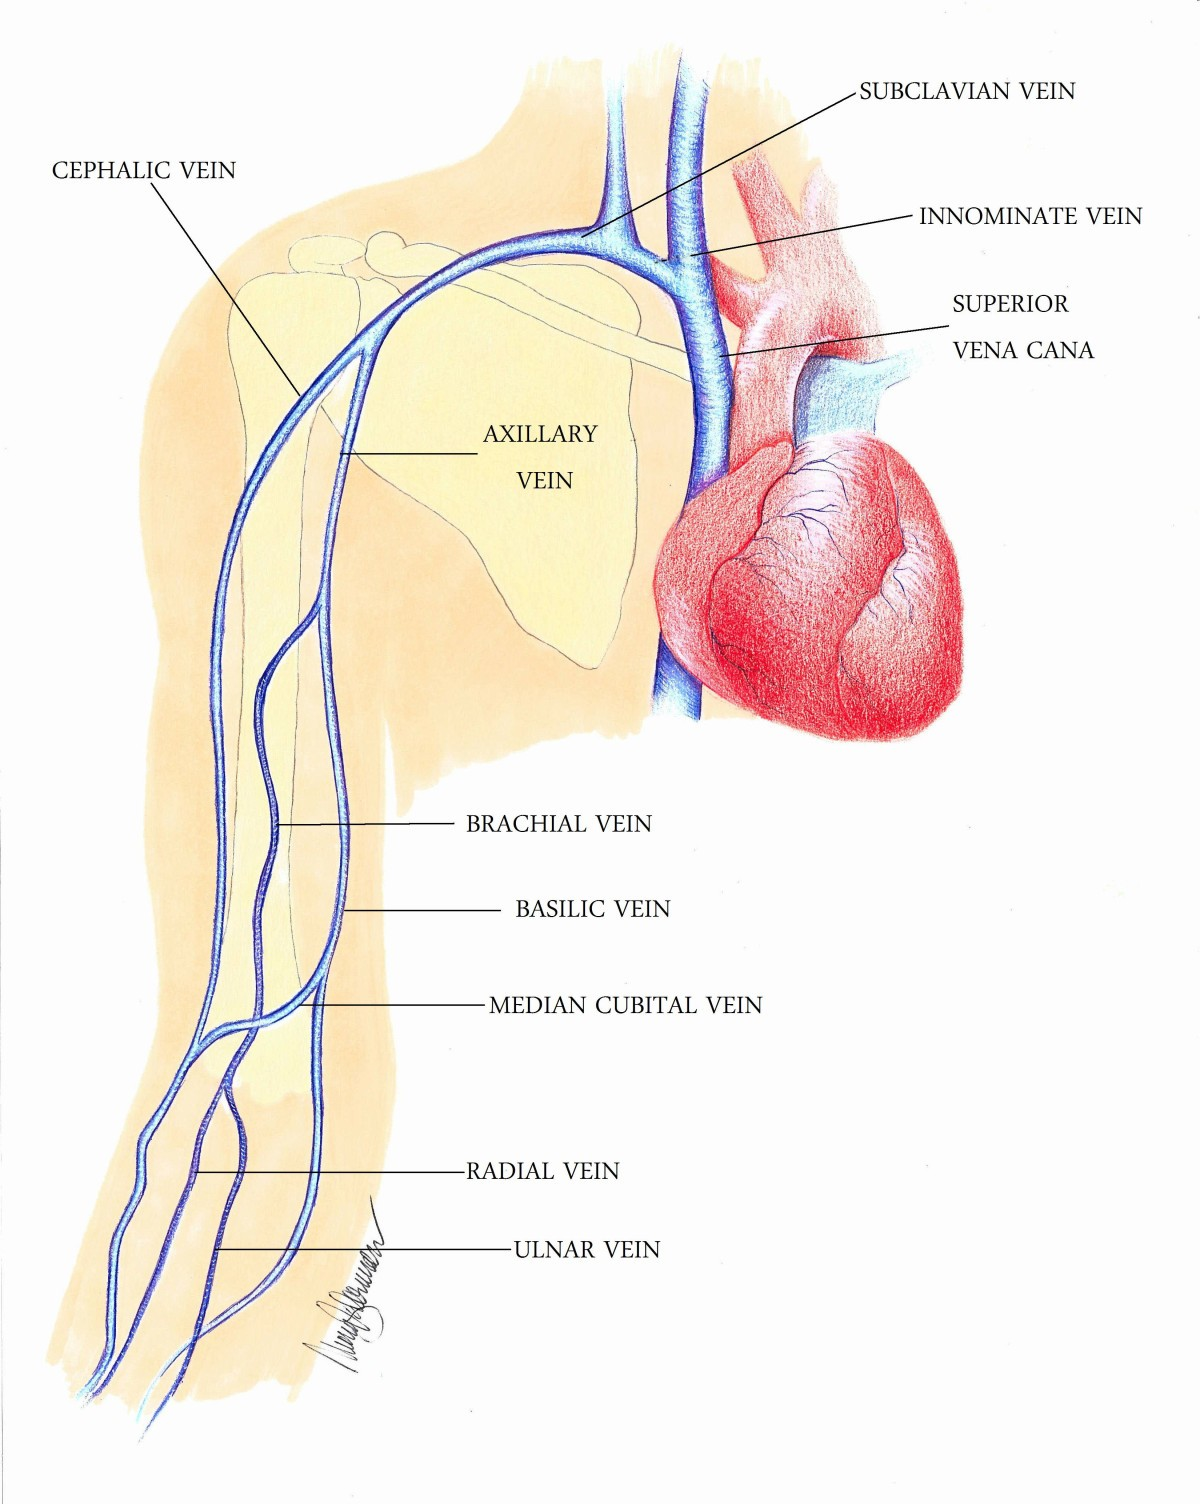 Contemporary Subclavian Vein Anatomy Images Ornament - Physiology Of ...